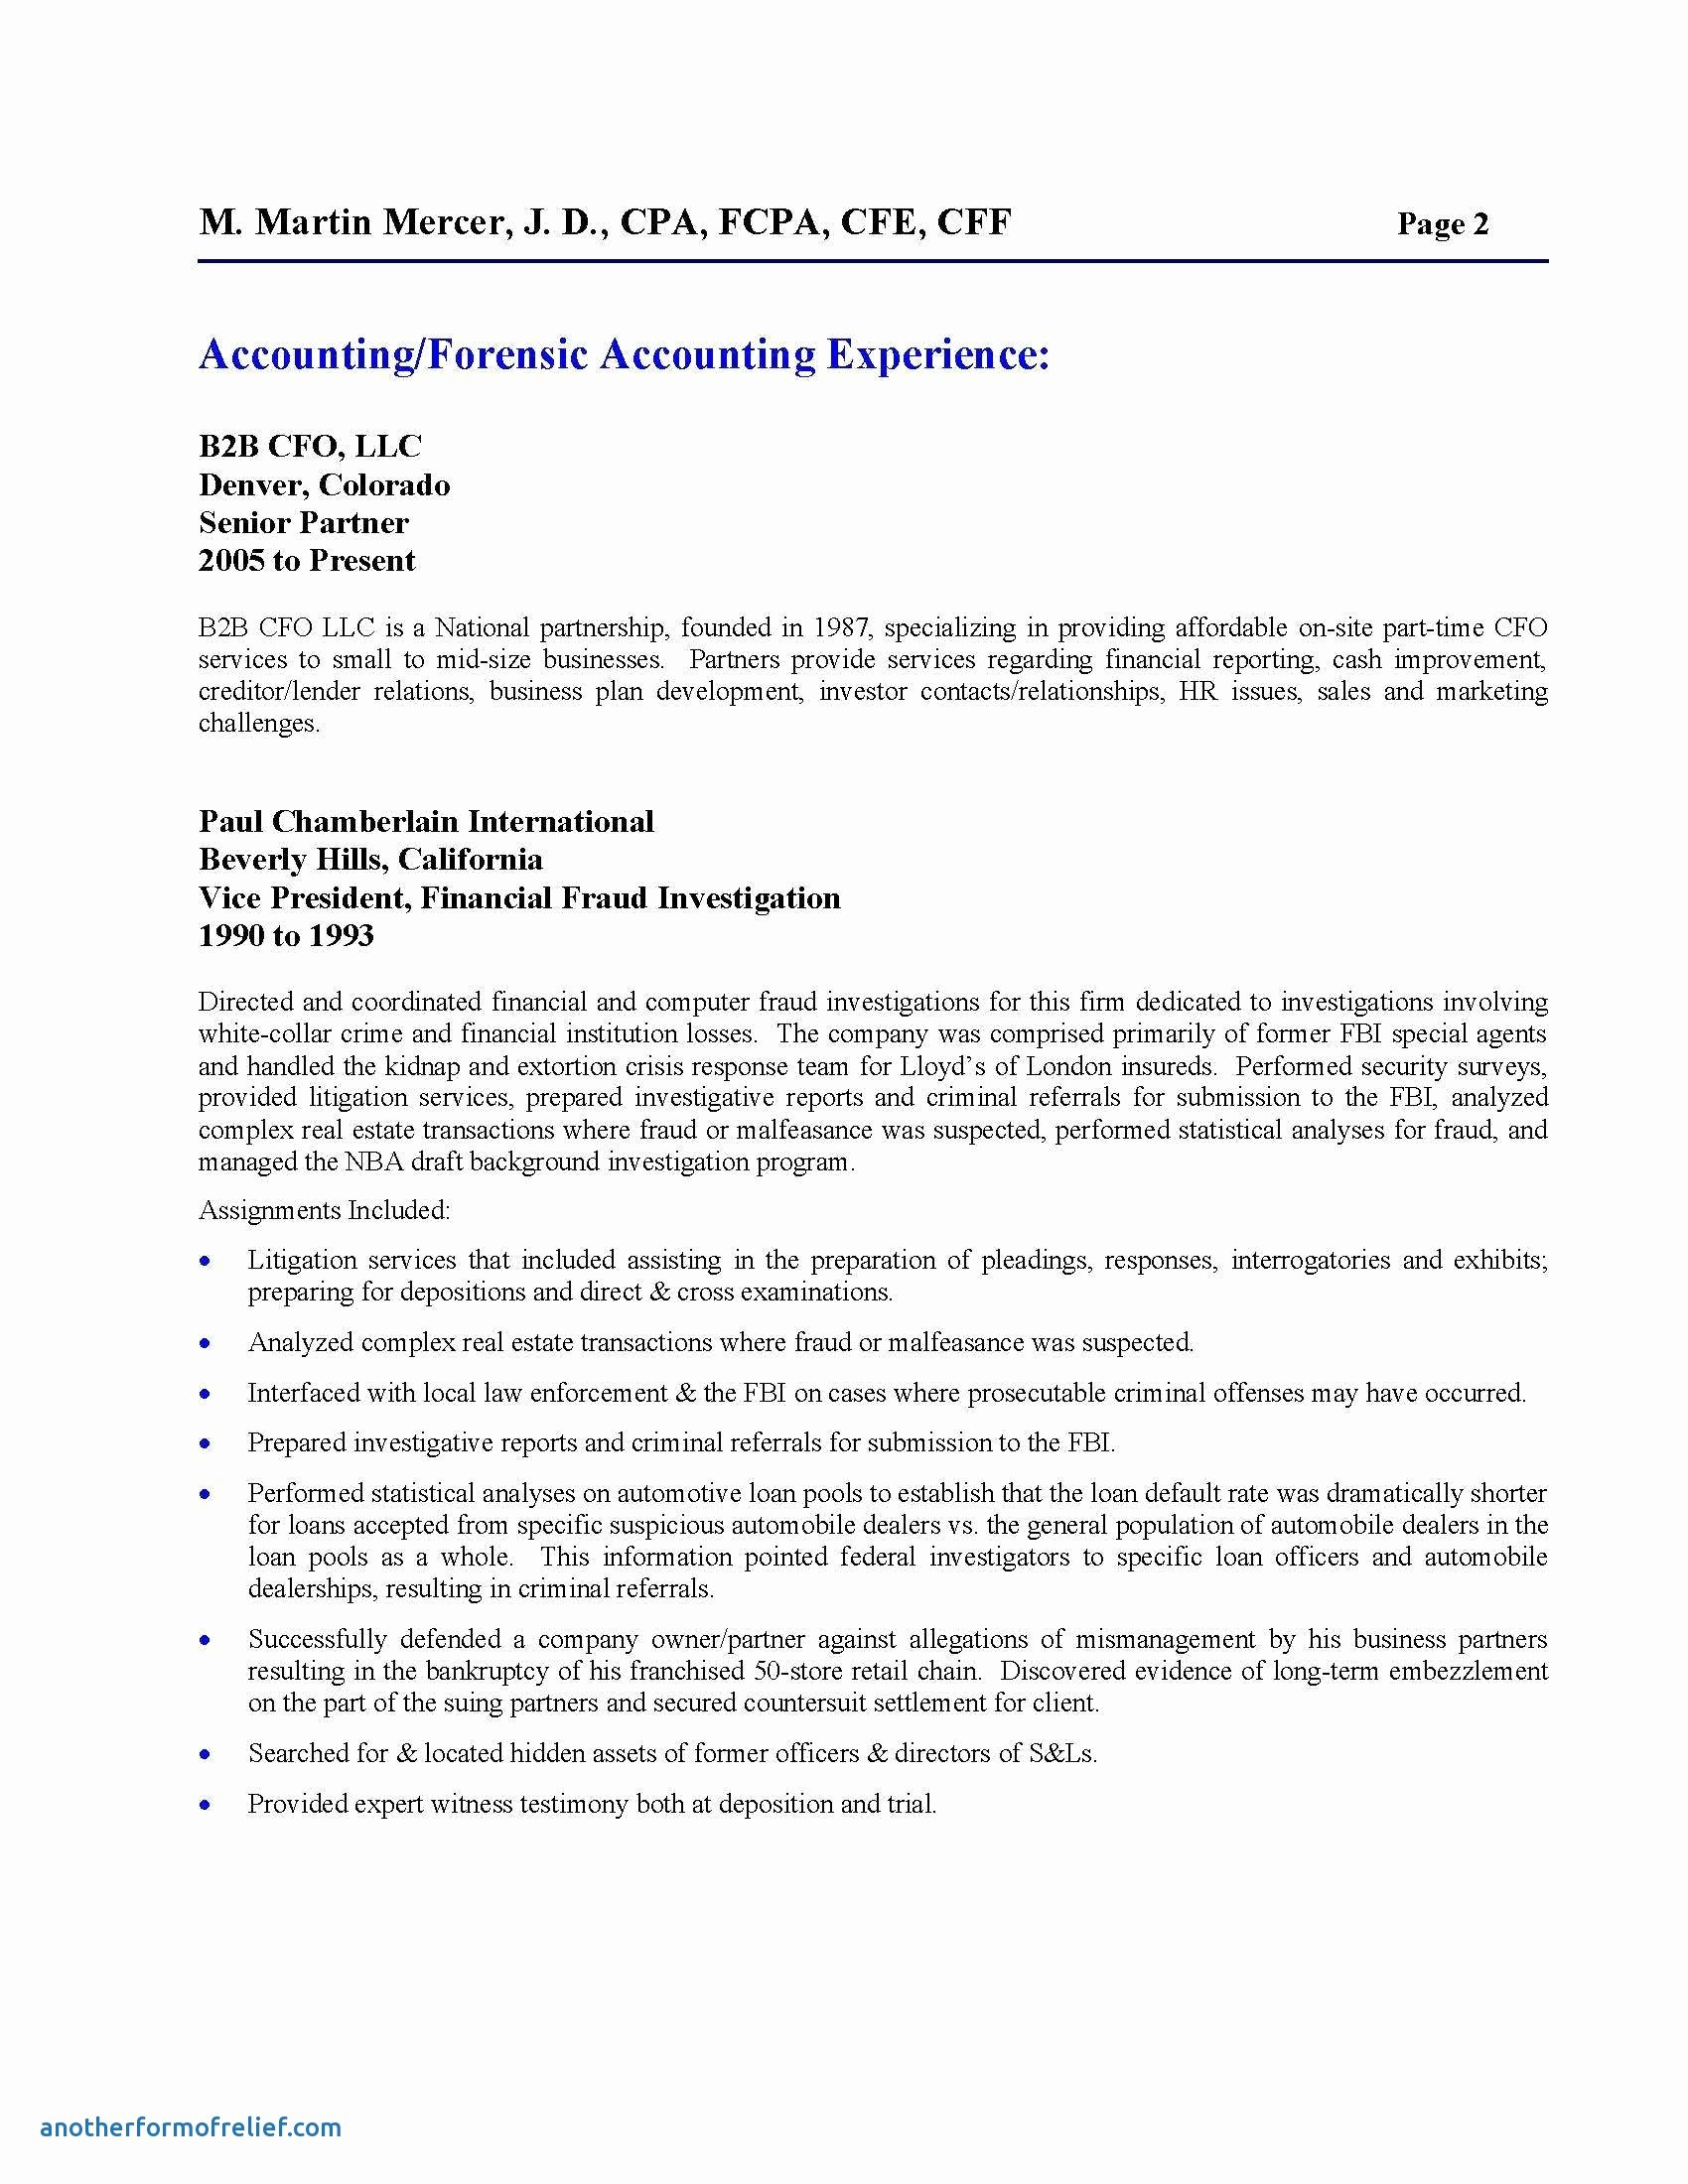 Computer forensic Report Template Awesome Expert Witness Report Template